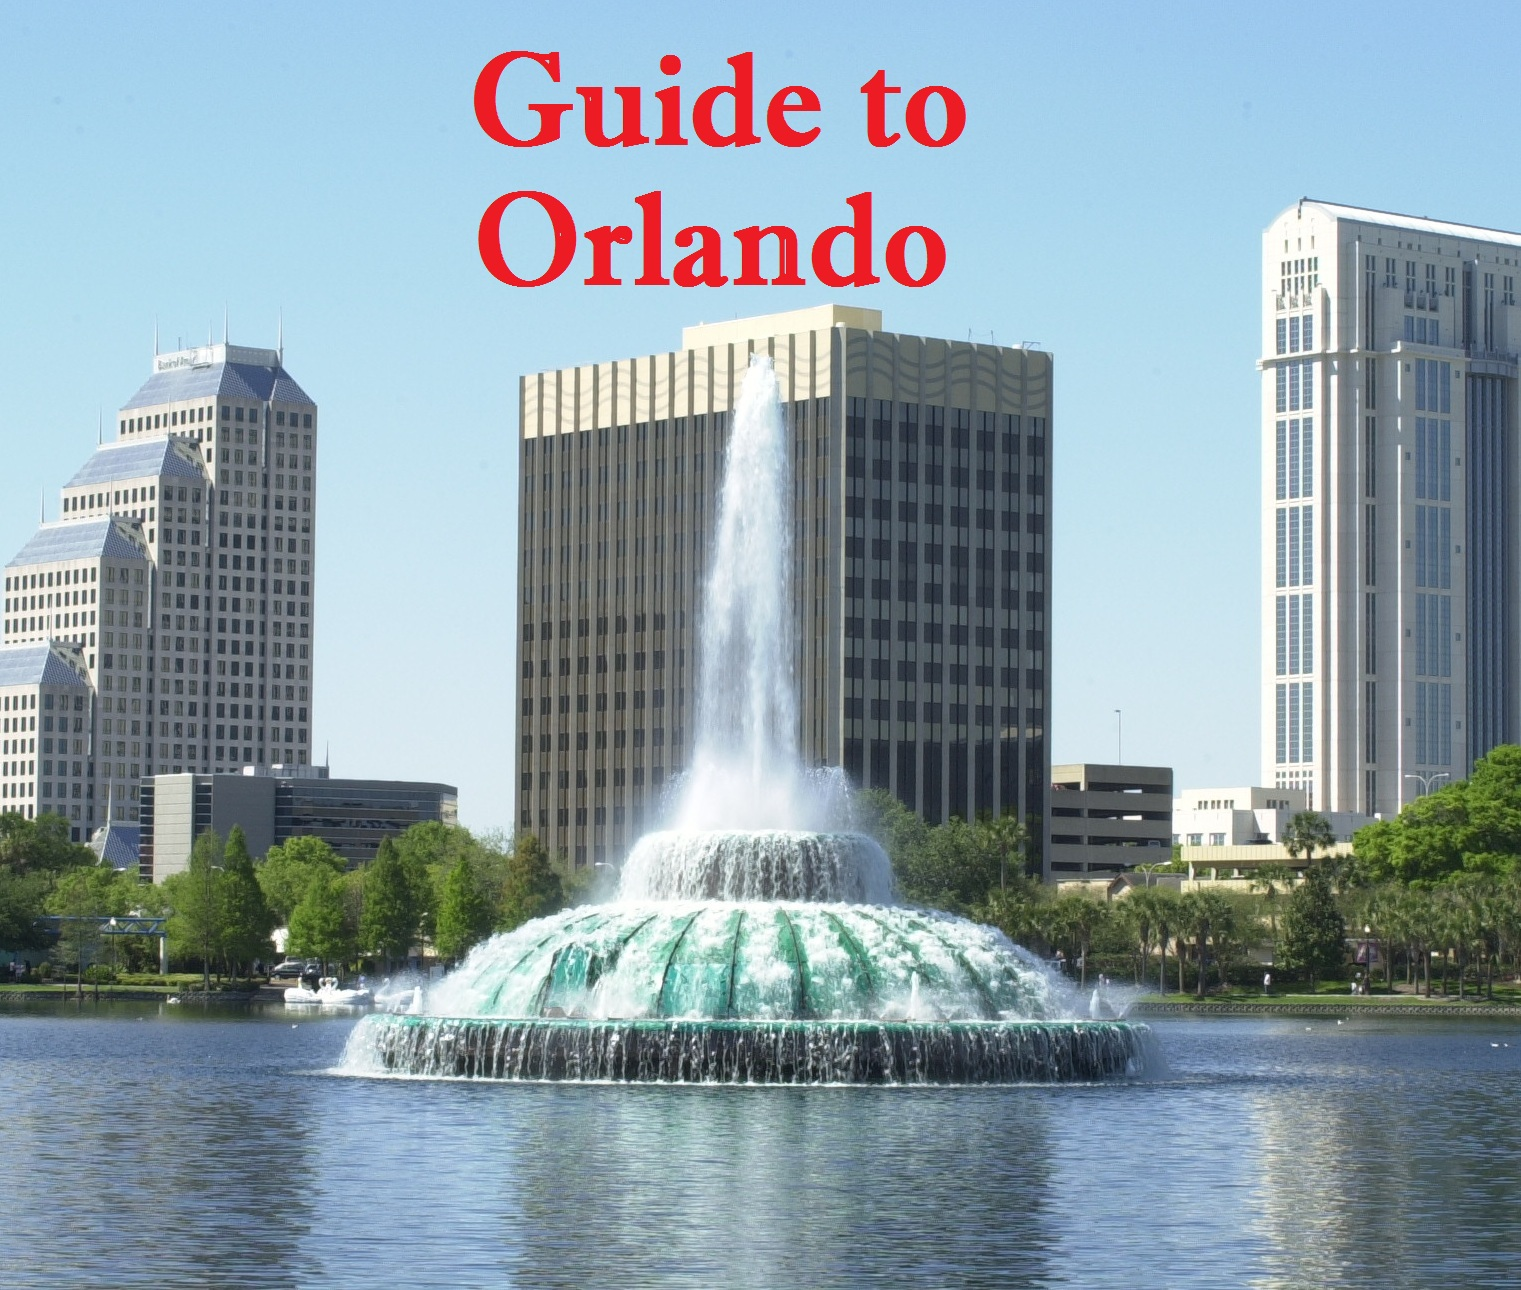 Guide to Orlando By: Euprintpress Publishing